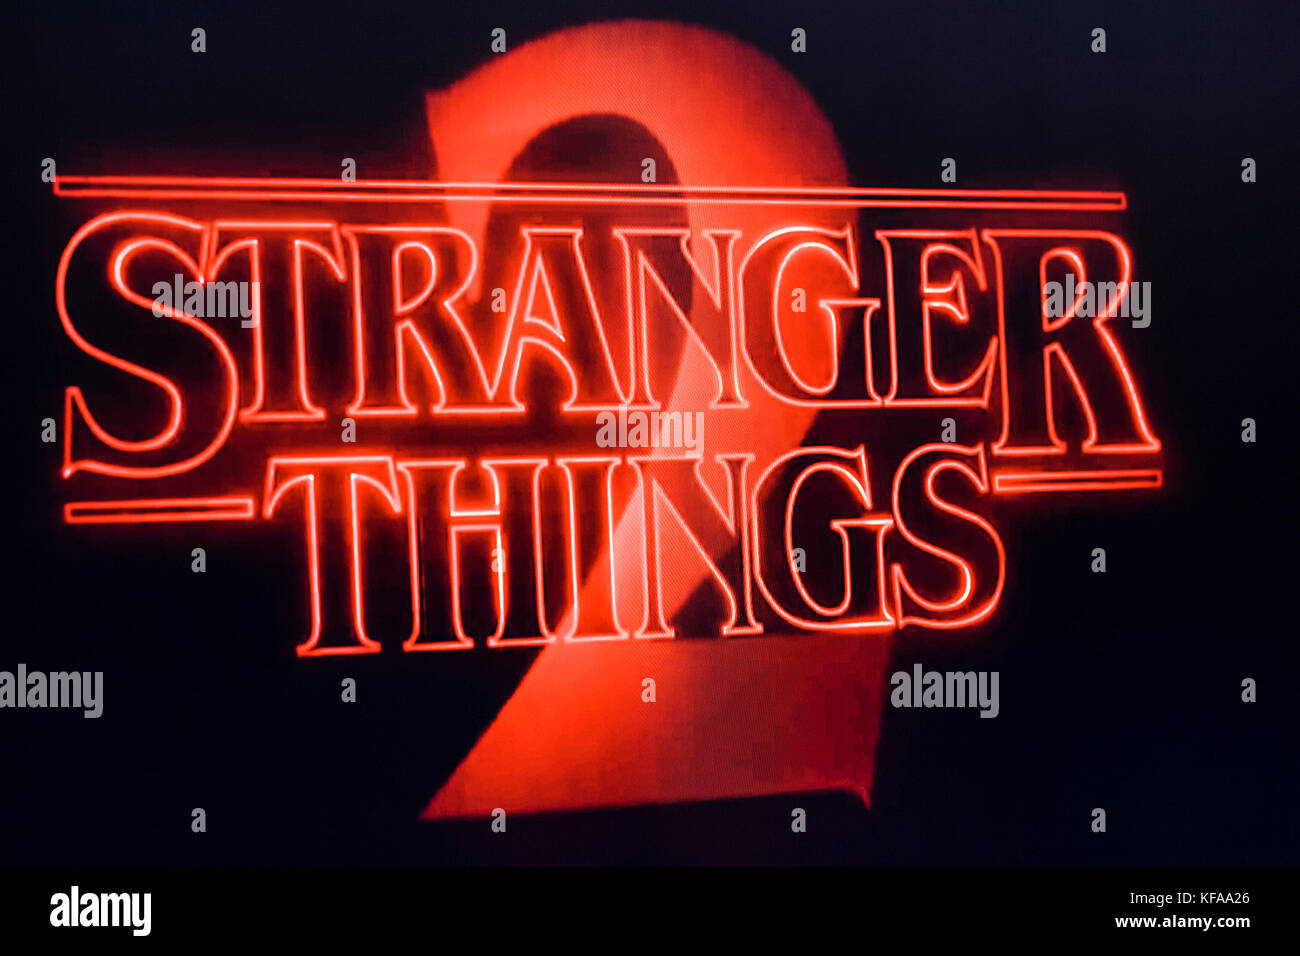 LONDON, UK - OCTOBER 26th 2017: Stranger things title logo photographed on a computer screen. - Stock Image